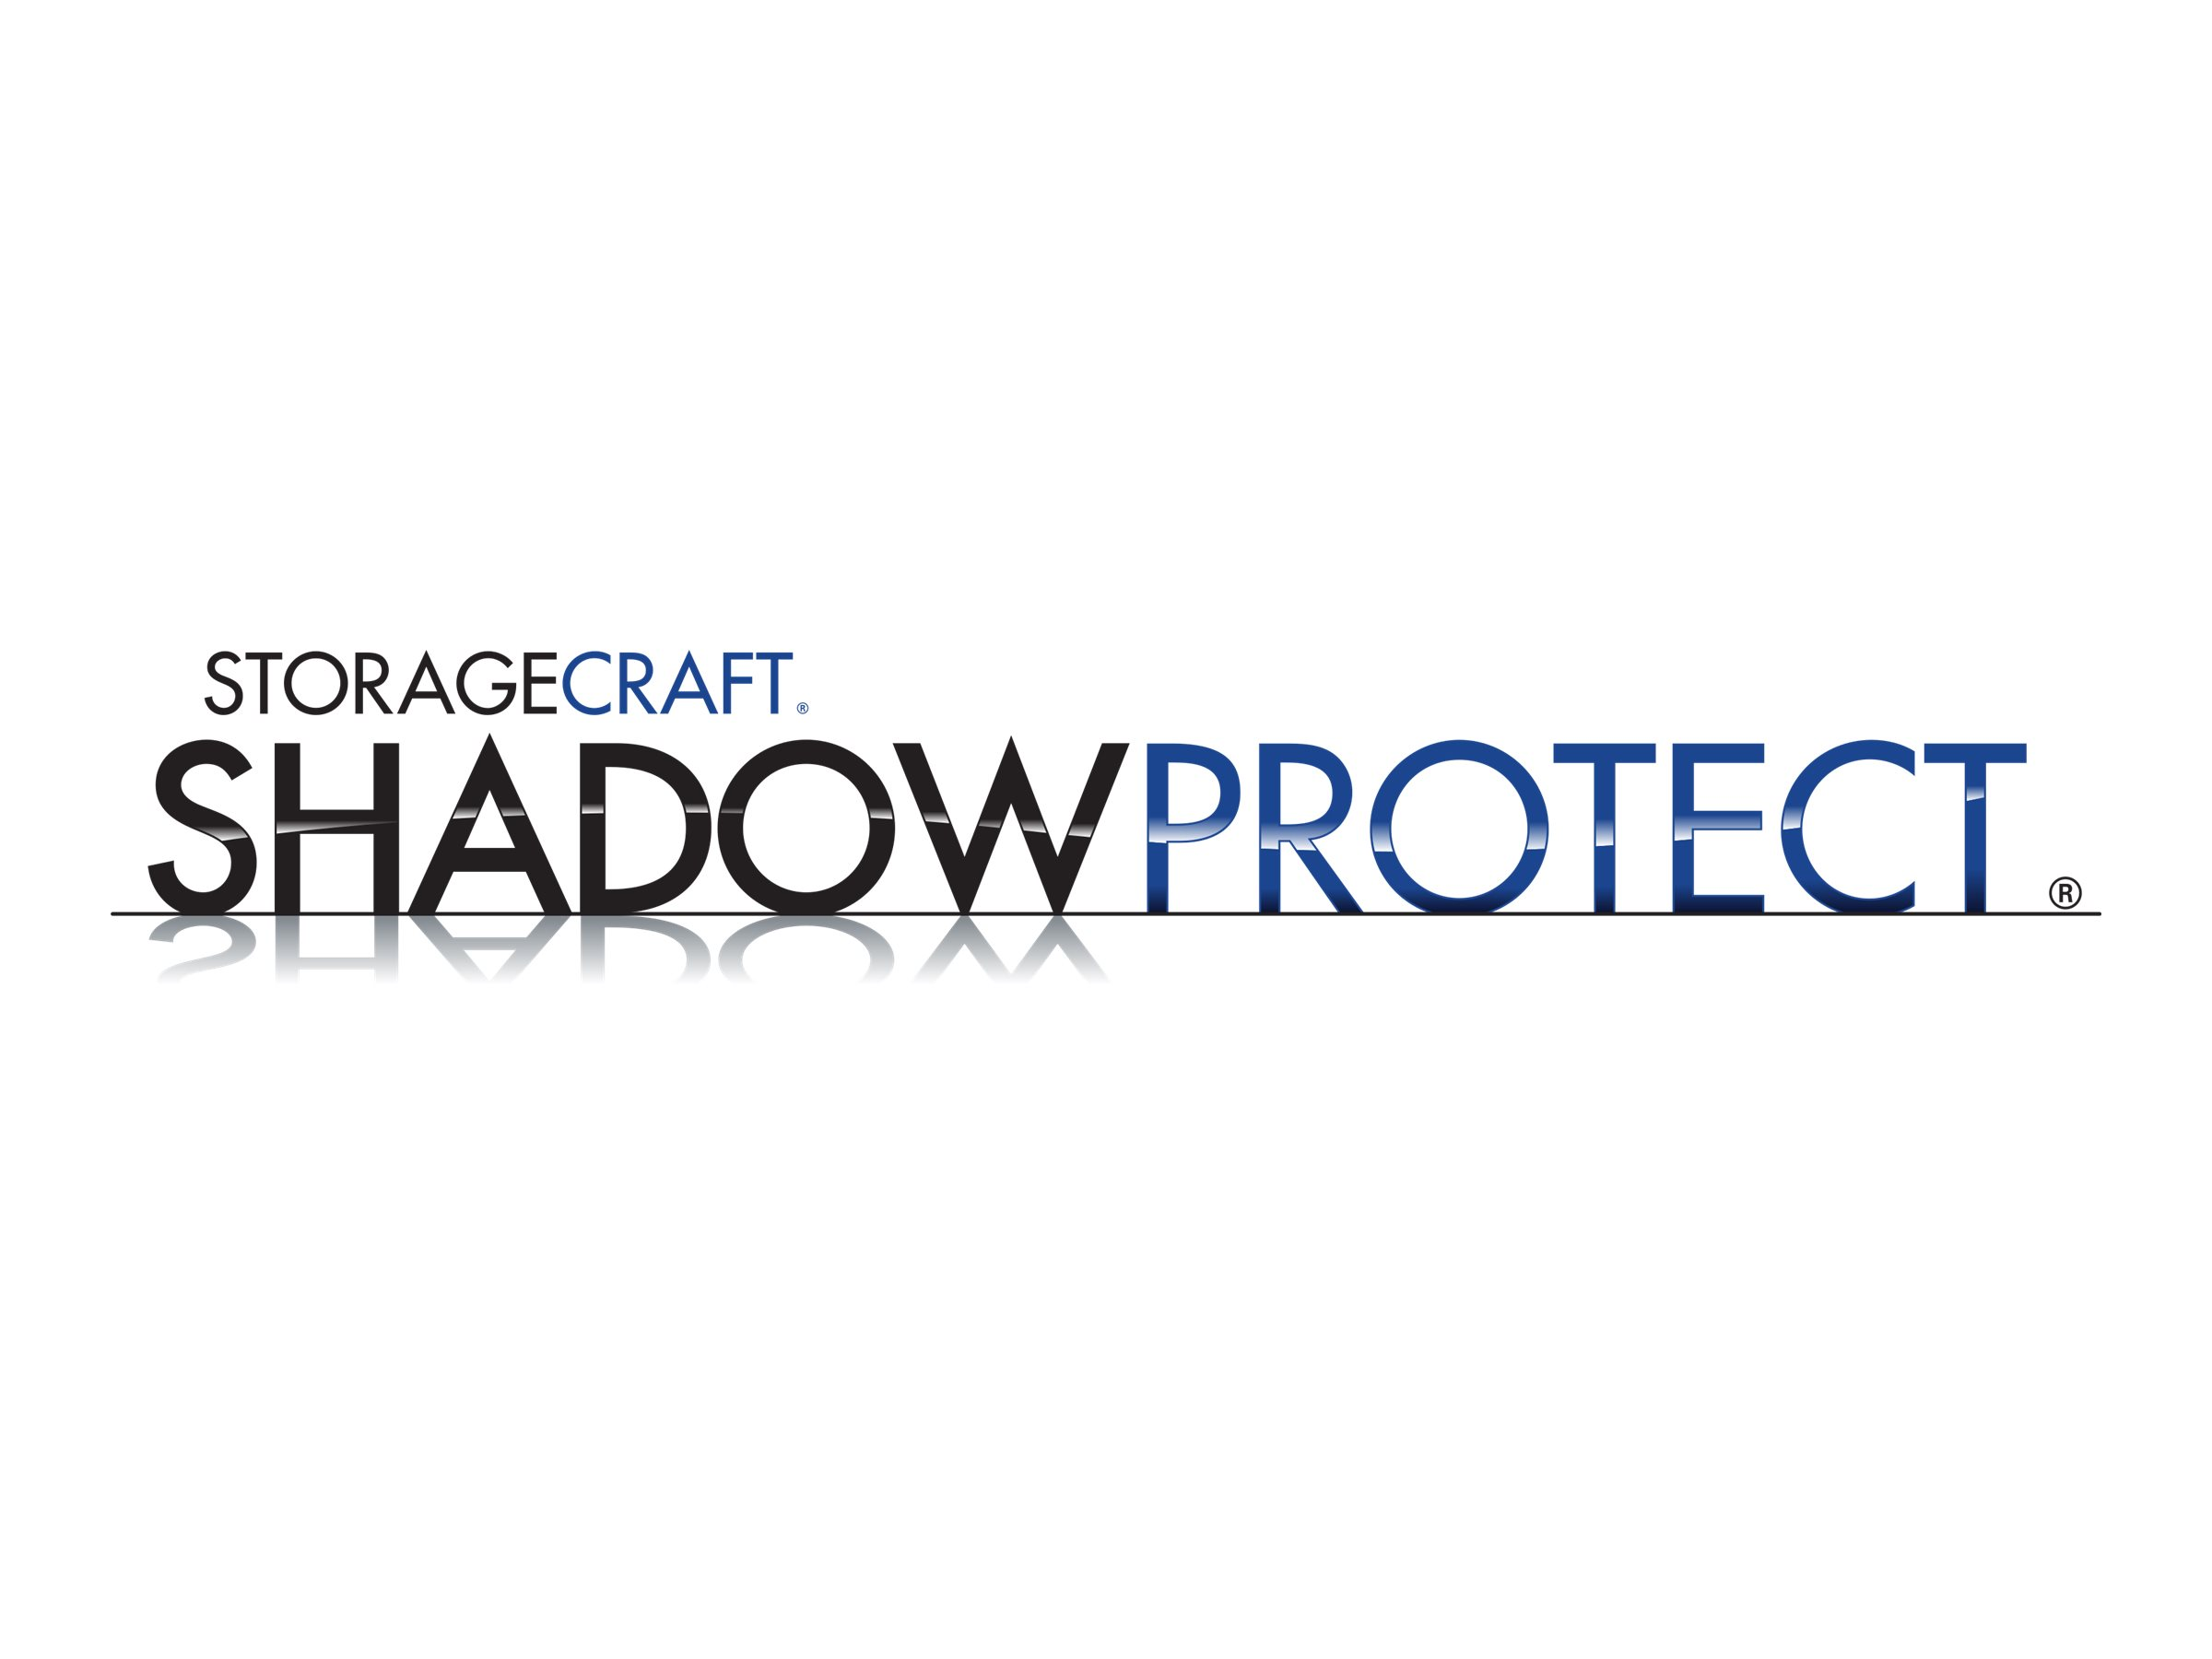 ShadowProtect Granular Recovery for Exchange (v. 8.x) - upgrade license + 1 Year Maintenance - 250 mailboxes